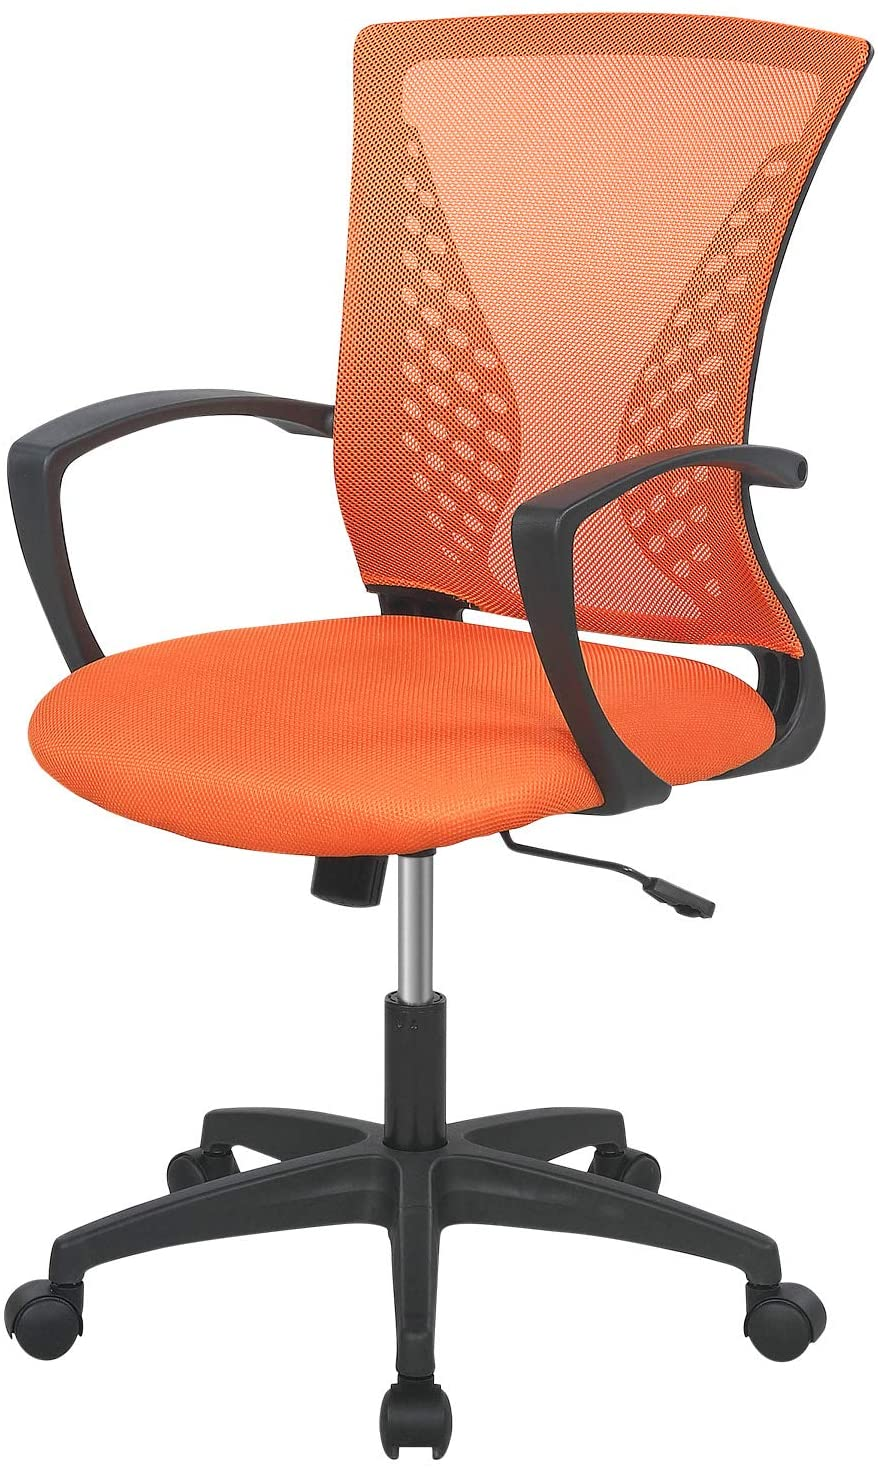 Home Office Chair Mid Back PC Swivel Lumbar Support Adjustable Desk Task Computer Ergonomic Comfortable Mesh Chair with Armrest (Orange)